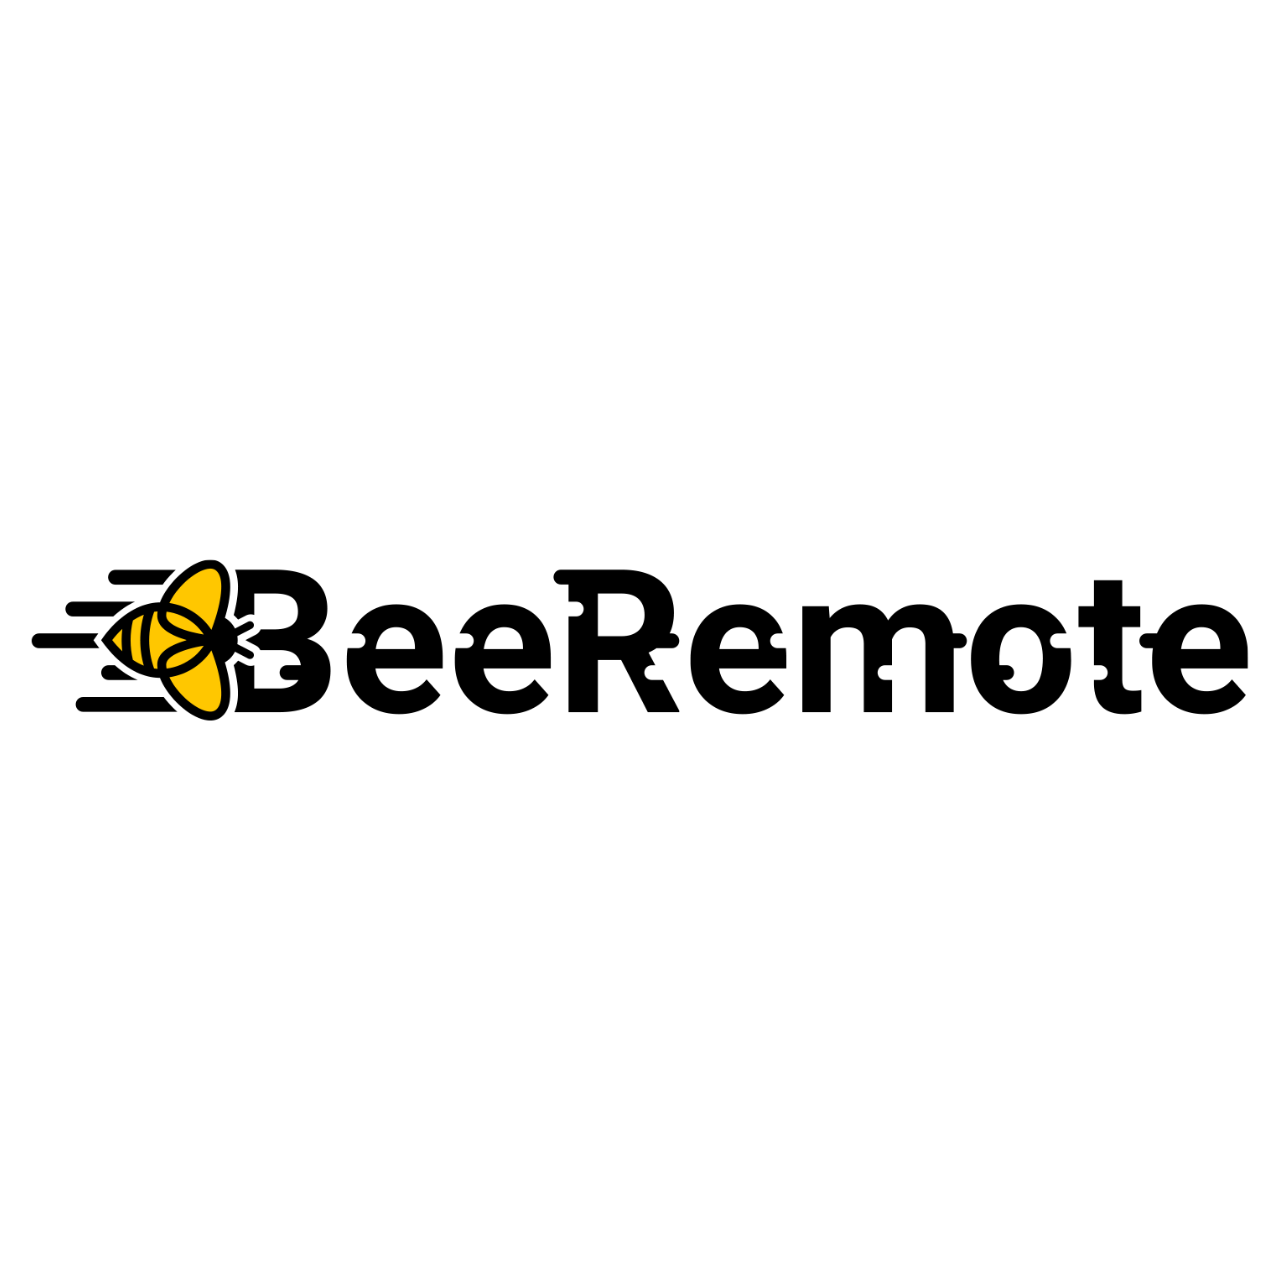 beeremote Logo